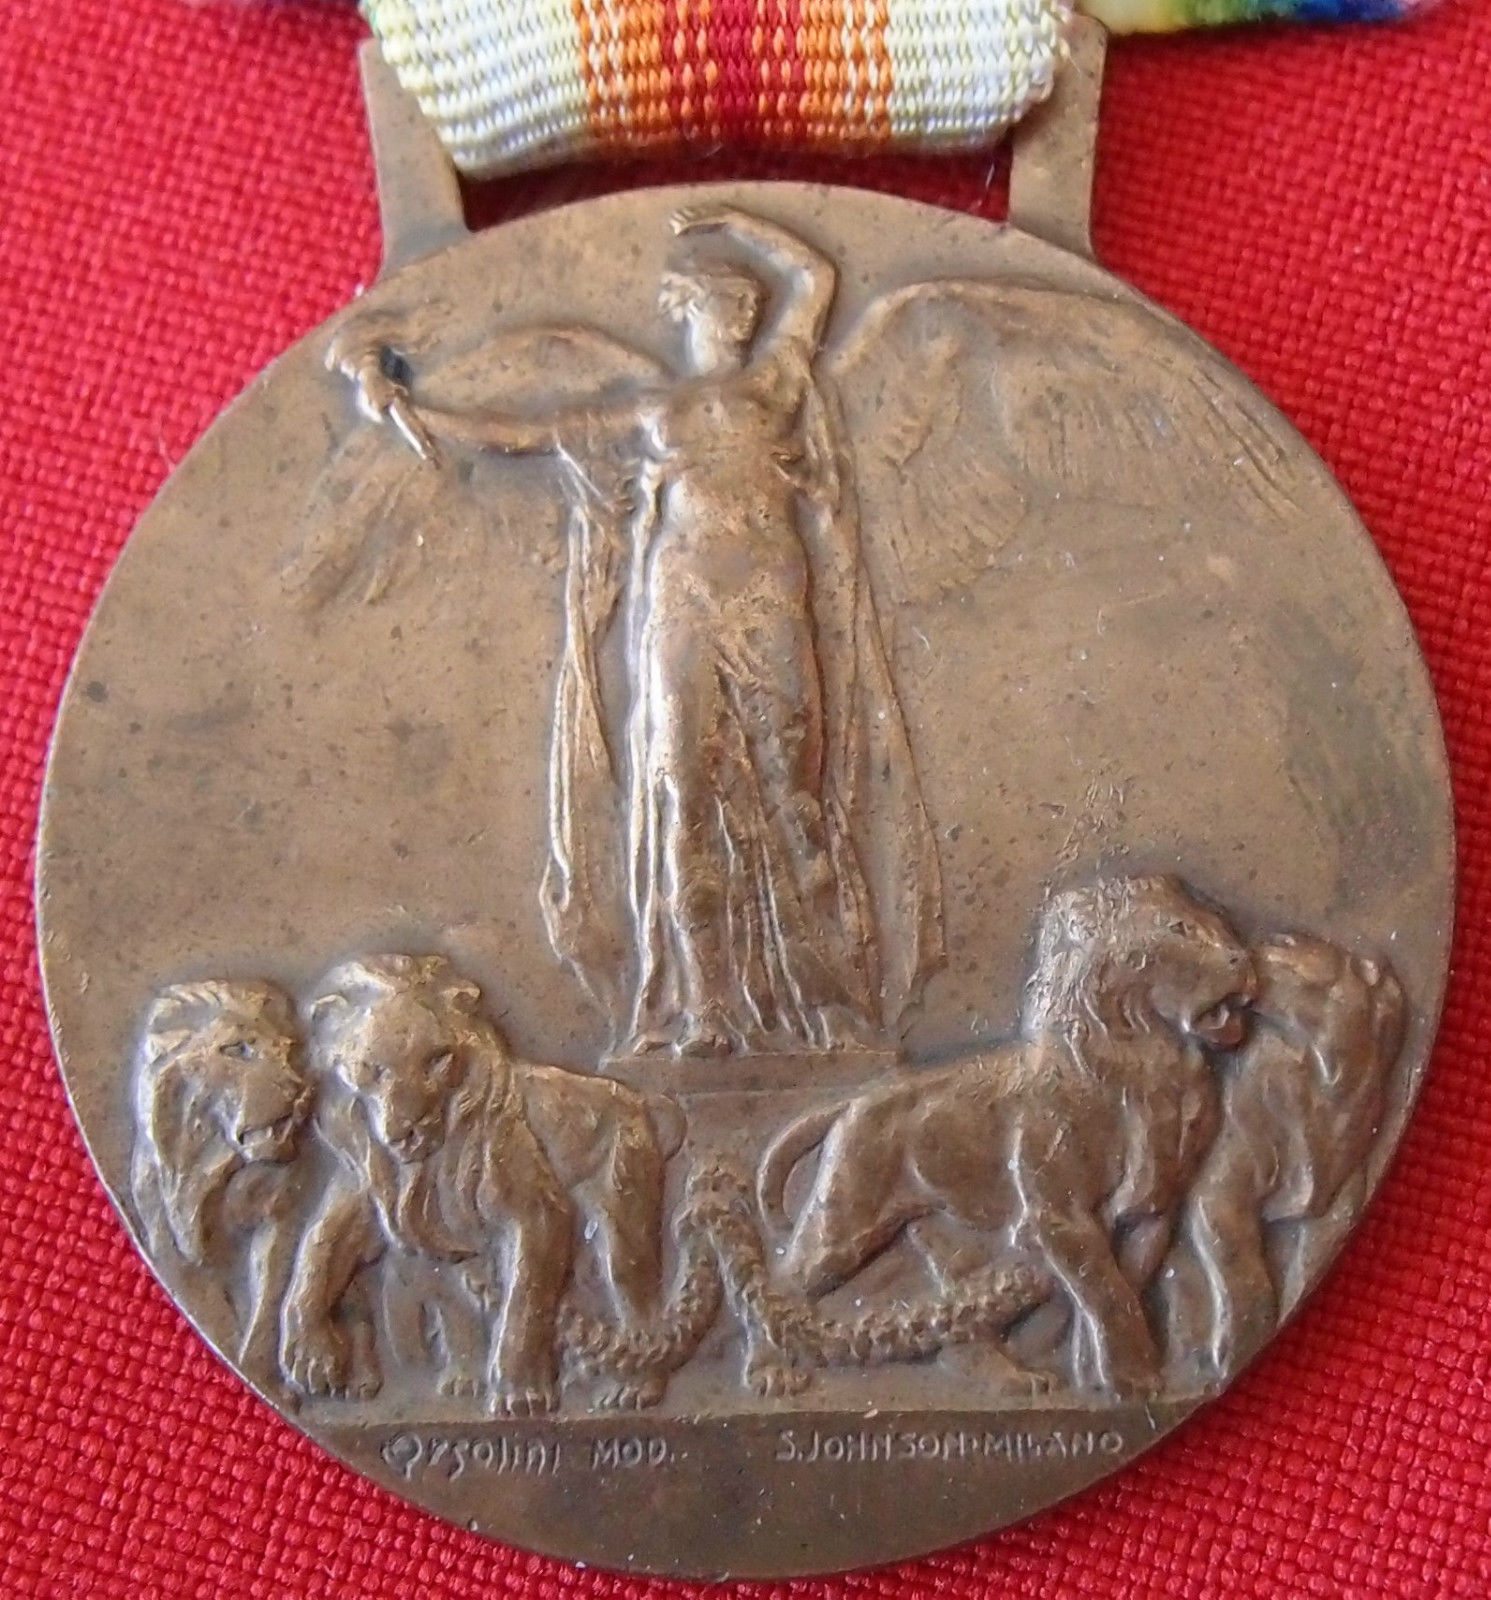 WW1 ITALIAN VICTORY MEDAL 1914-1918 BY STEFANO JOHNSON OF MILAN